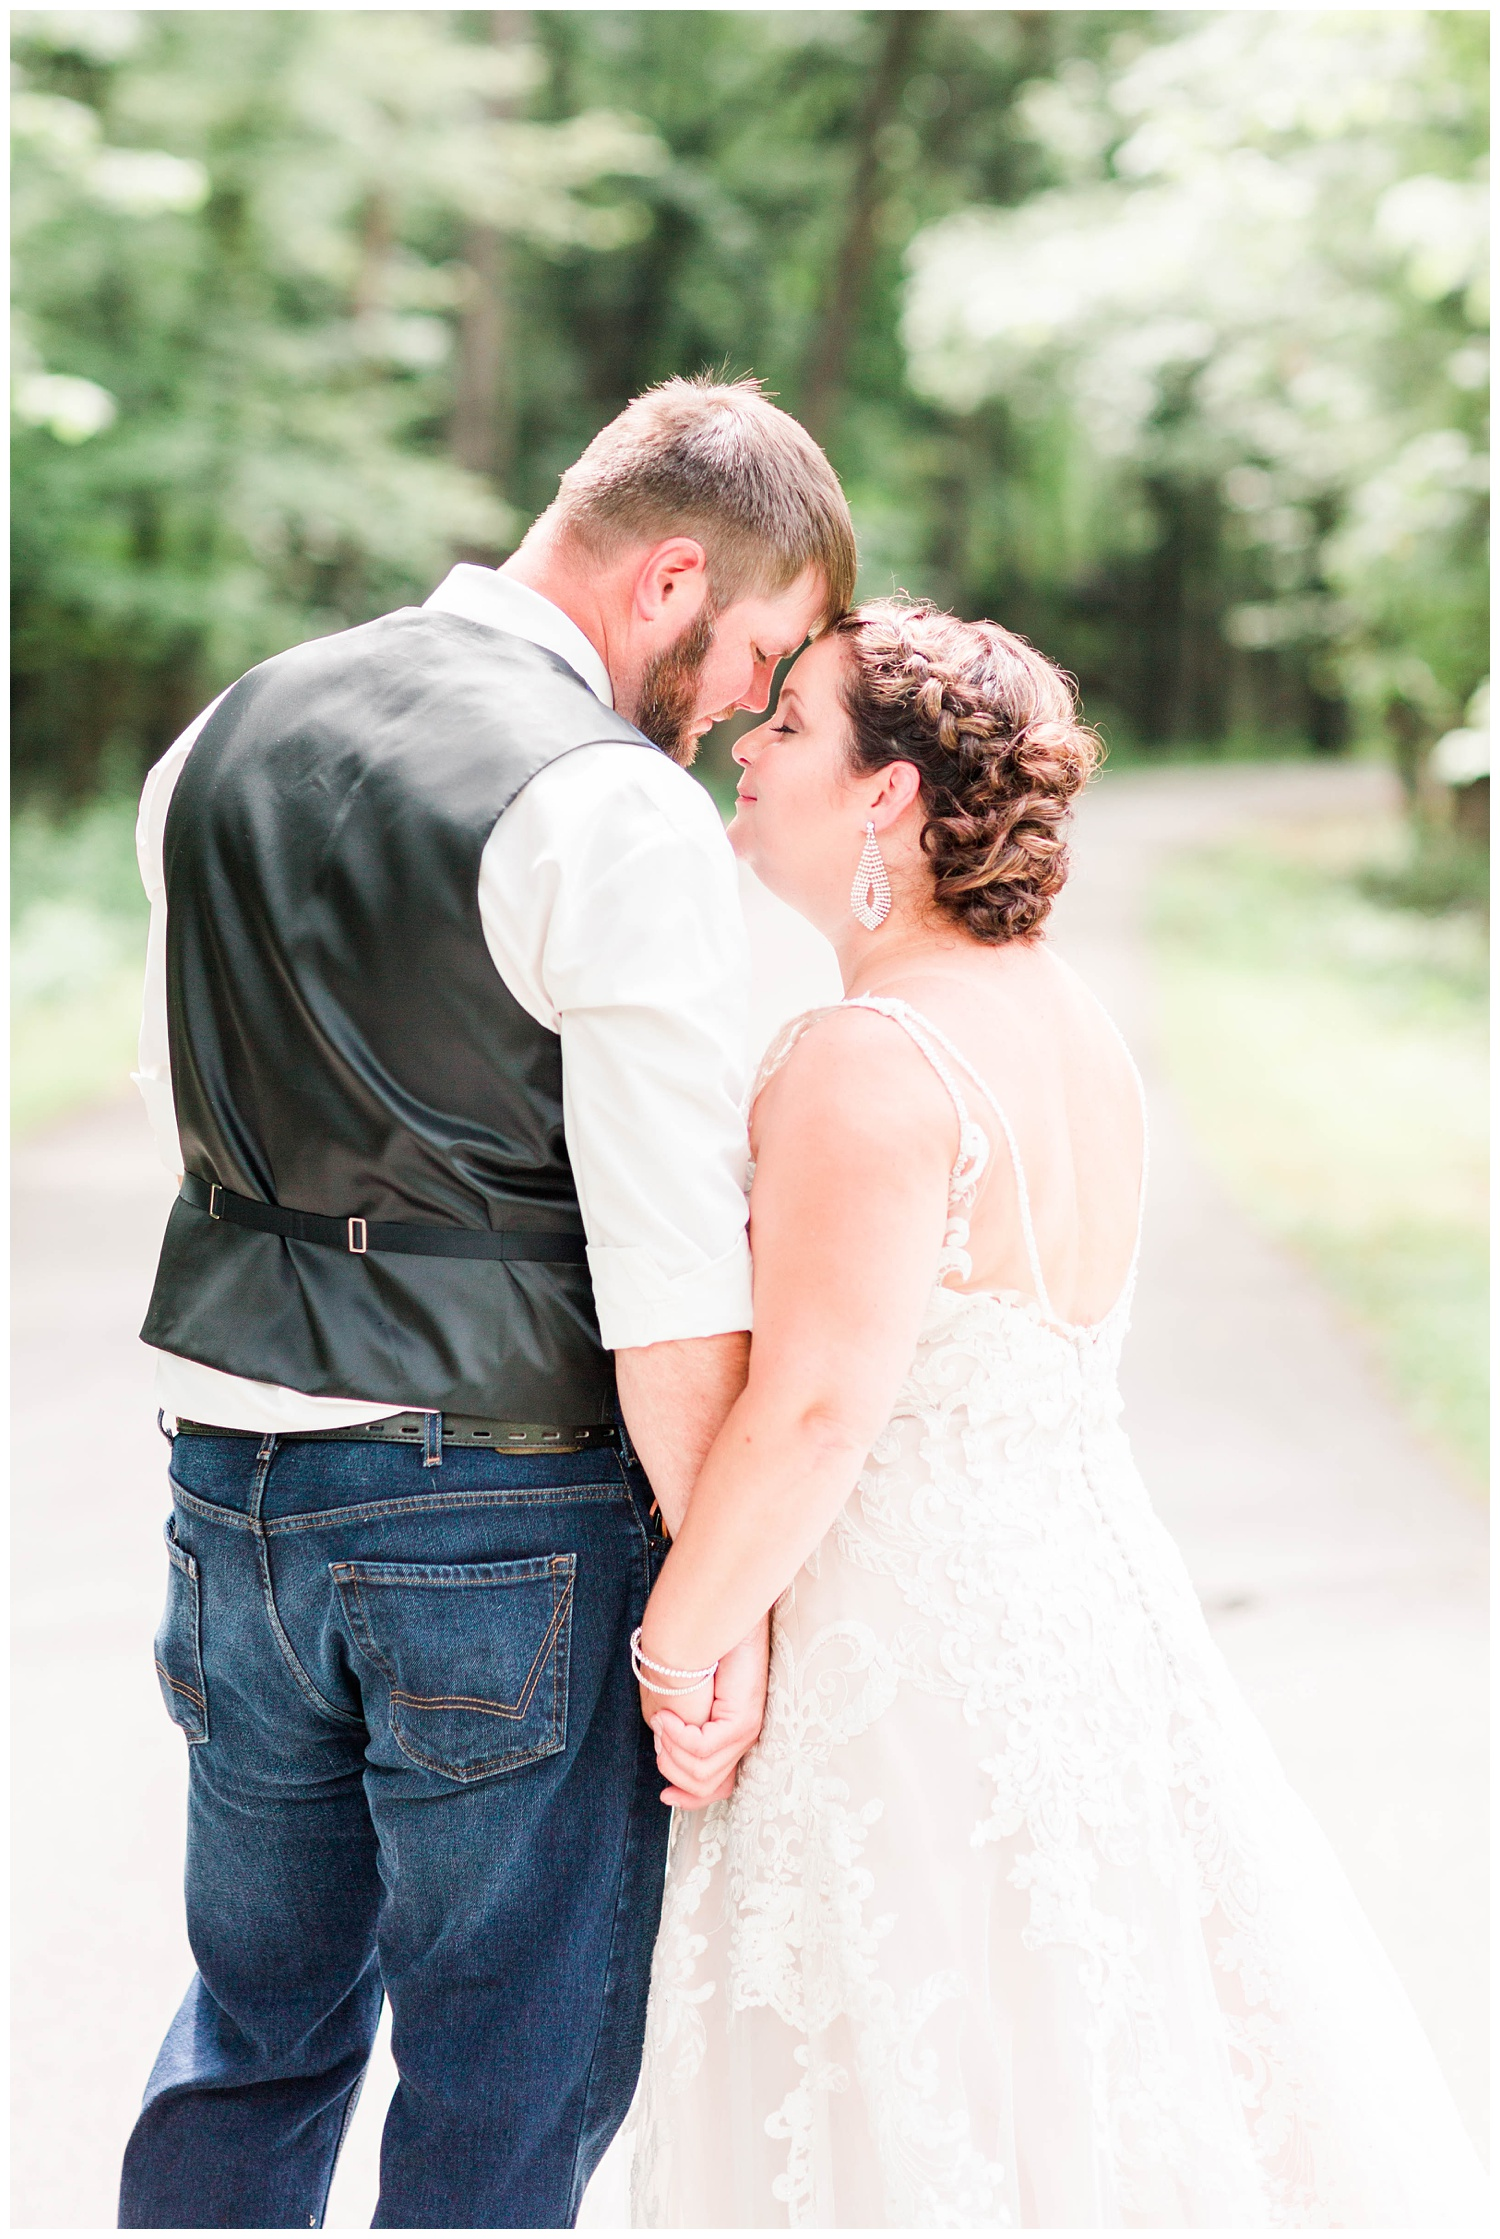 Bride and groom stand intimately close on a pathway in Call Park in Algona, Iowa   CB Studio